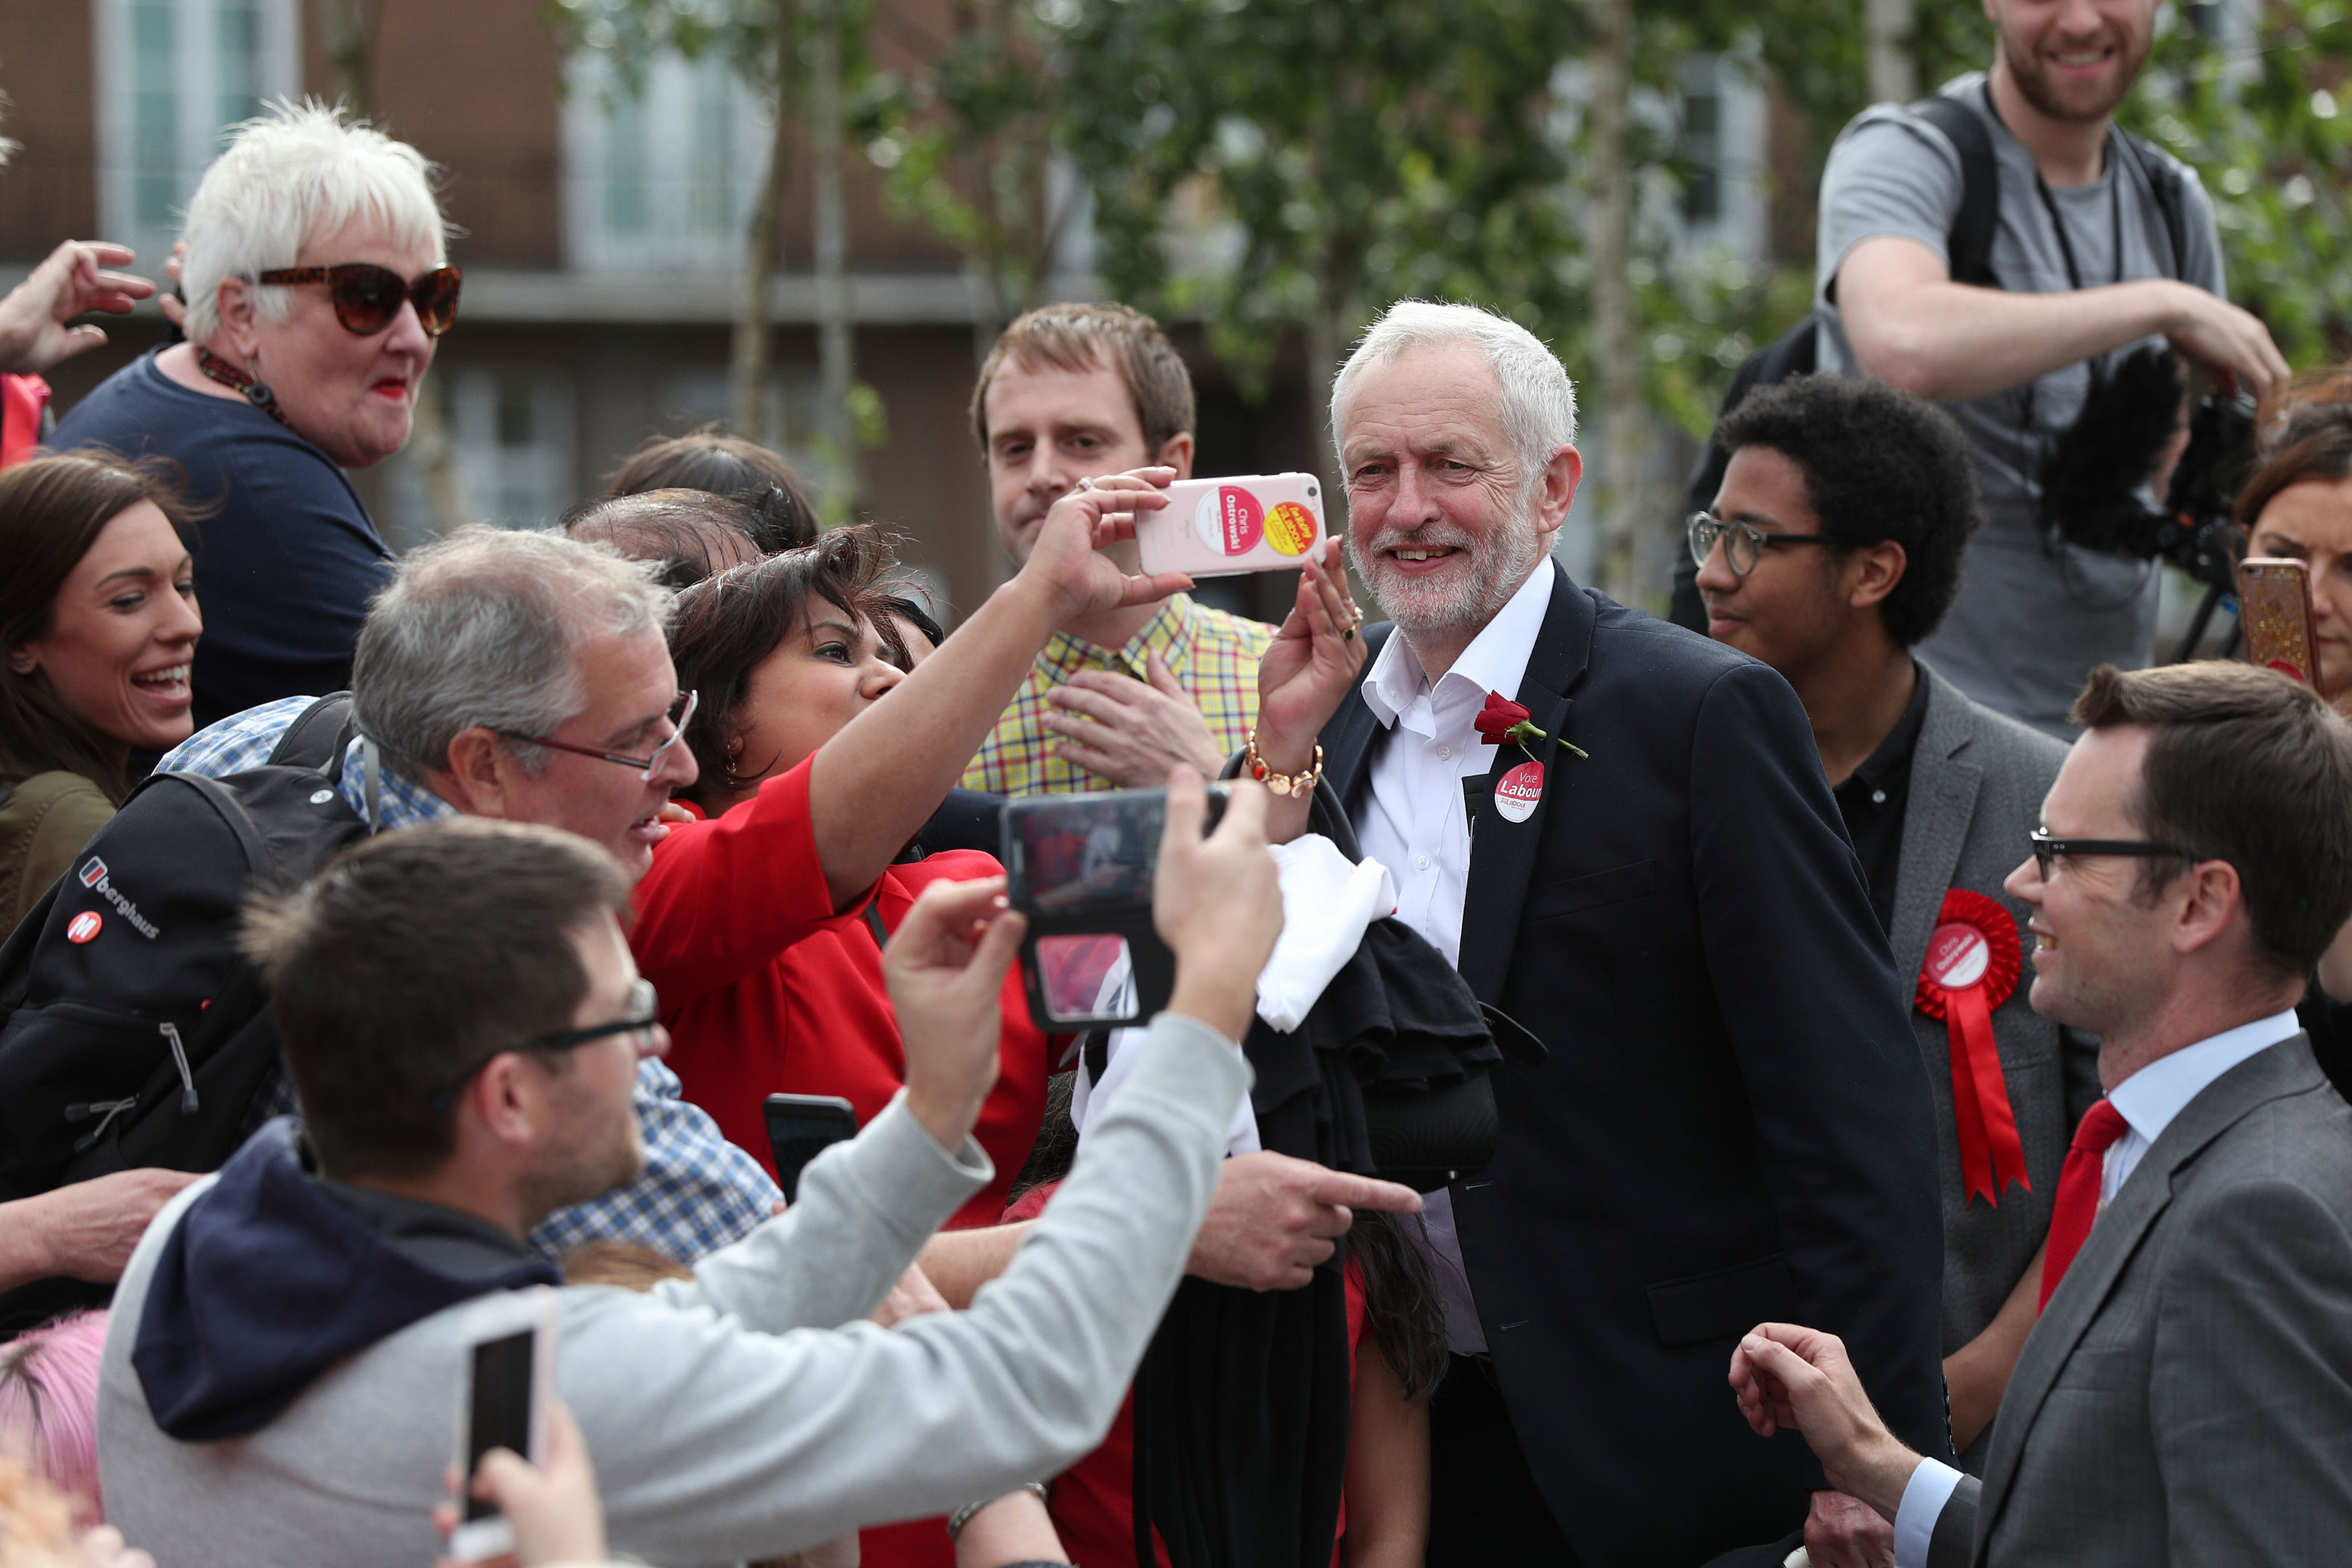 Labour leader Jeremy Corbyn after speaking at an event at the Parade in Watford while on the General Election campaign trail yesterday.